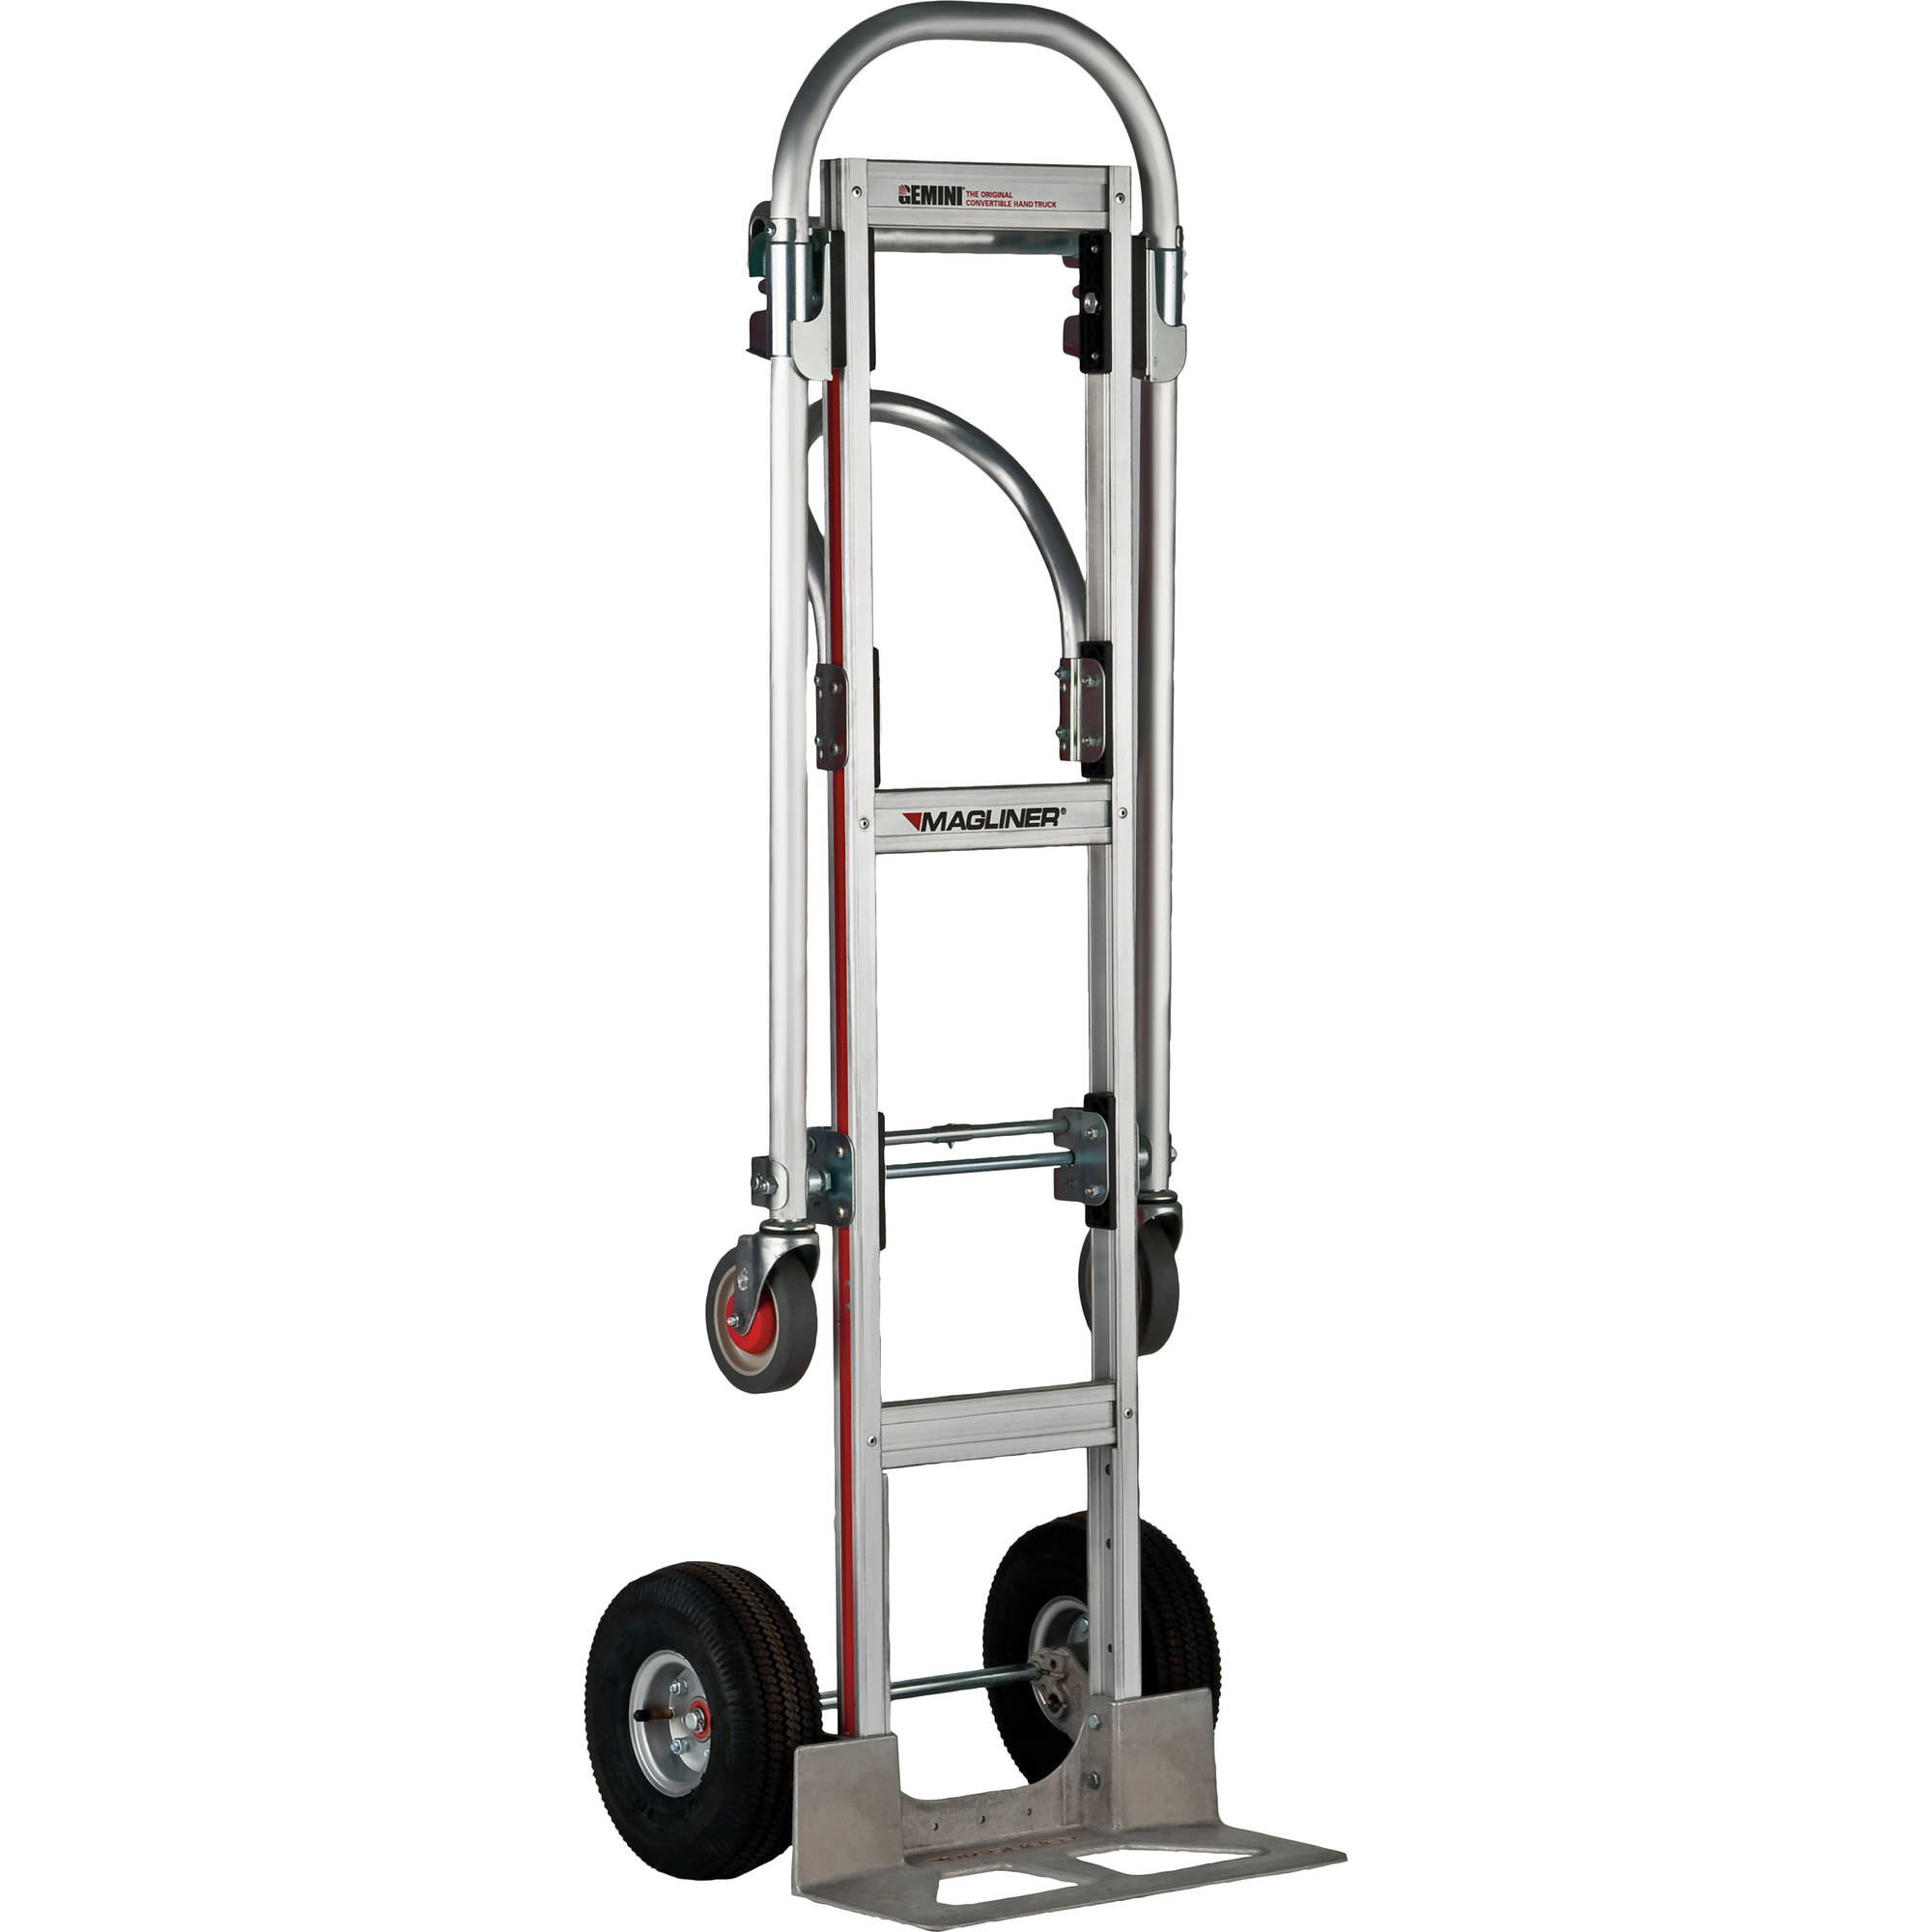 Red Portable Hand Truck Delivery Cart Curb Ramp